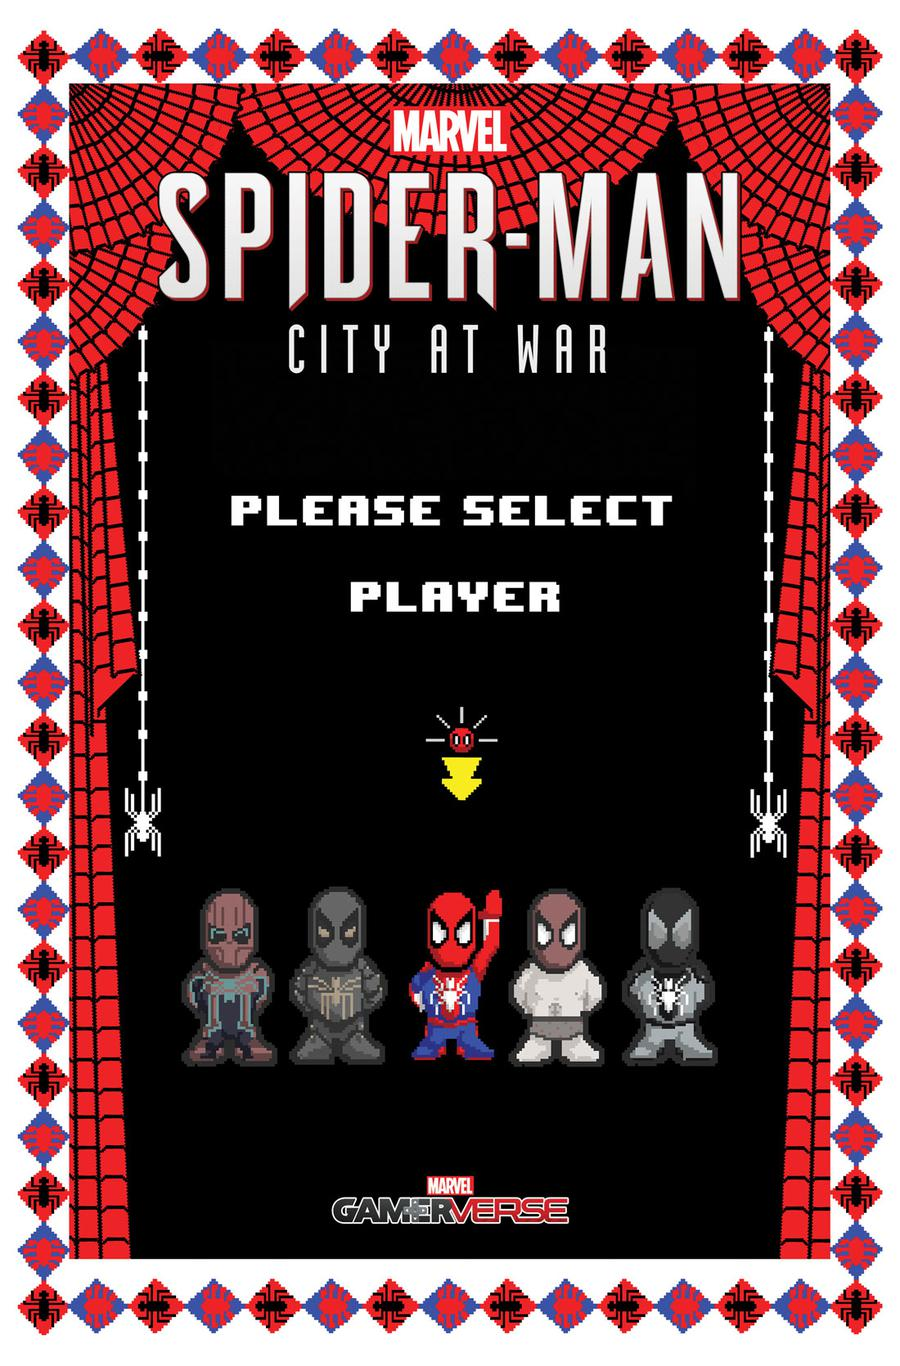 Marvels Spider-Man City At War #5 Cover B Variant Matthew Waite 8-Bit Cover